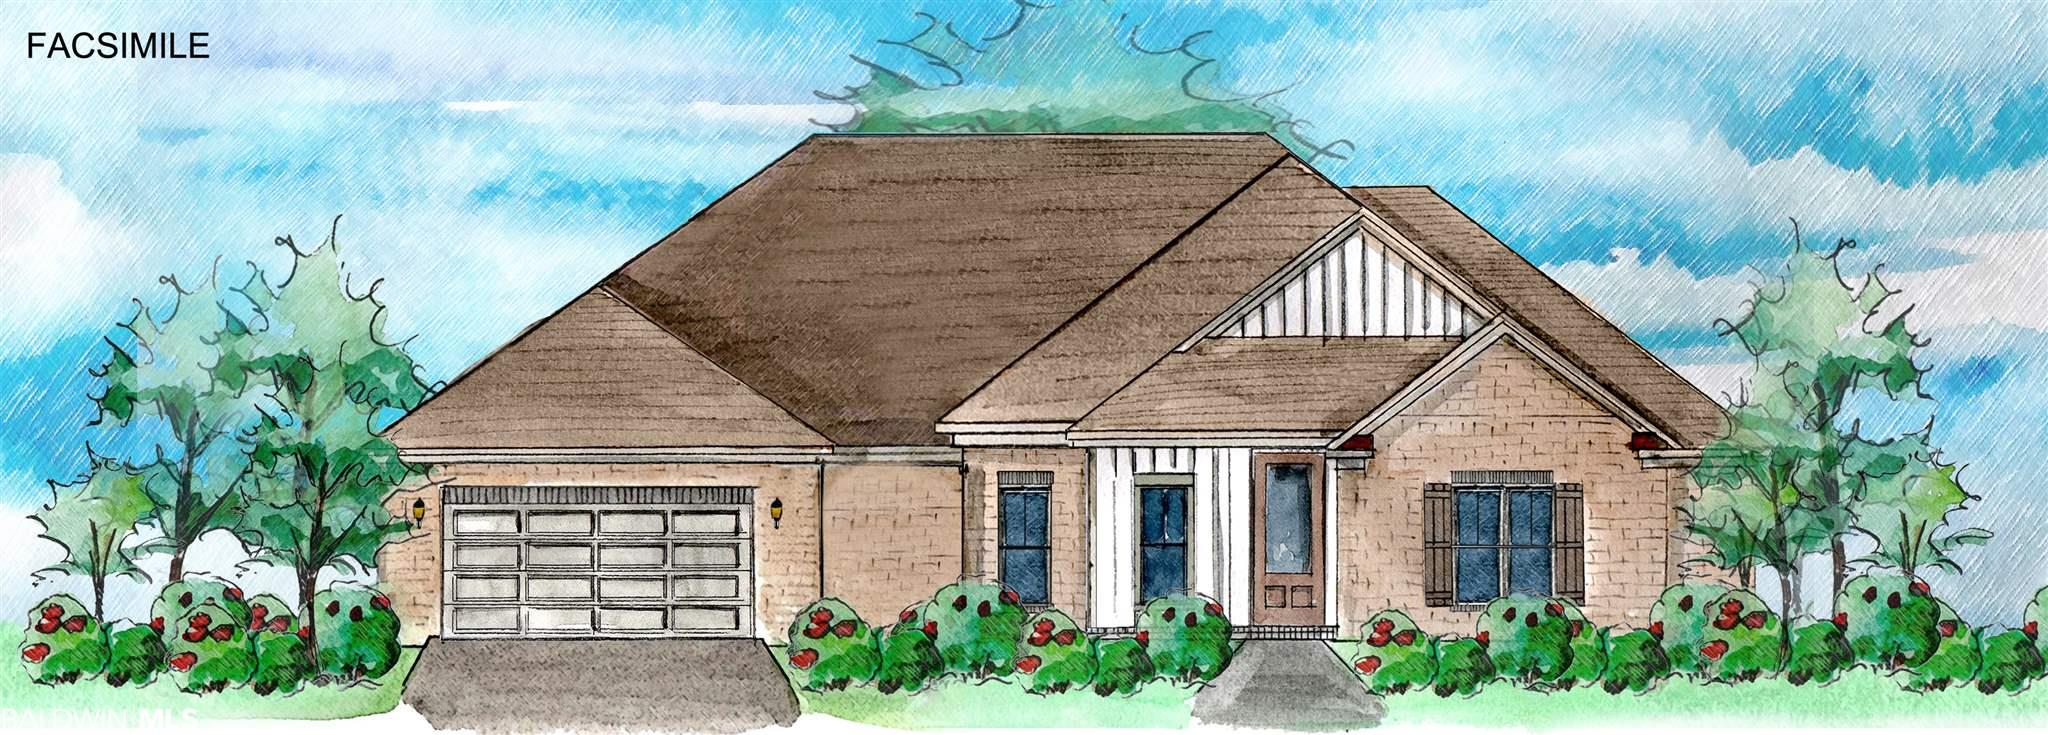 Welcome home to the Macon Plan by Truland Homes in The Tracery. This home comes tons of upgrades including wood flooring throughout the living, dining, kitchen area, granite counters in kitchen and master bath, gas log fireplace in the family room, custom-crafted cabinets throughout with painted upgrade in the kitchen, and ceramic tiled shower in master bath. From this impressive entry way into the great room with it's 10 foot ceiling surrounded by crown molding, it will catch your breath at the airy open space for living, dining, and entertaining. Planning, preparing and sharing meals here in the spacious island in the kitchen connected to a large breakfast area can be a joy. A roomy master sanctuary with vaulted ceiling and a bathroom with double vanities also his & her closets. Gather around the cozy corner fireplace, a comfort on cool southern evenings. Live surrounded by the tasteful finishes you've come to expect from a Truland Home, a solace after a day out in the world. Wood flooring, painted kitchen cabinets, built-in mud bench, large corner pantry, multiple walk-in closets, and Gold Fortified Certification, along with the comfort from a Builders Home Warranty. Tracery by Truland Homes a beautiful neighborhood that is tucked into the woods but minutes from everything Fairhope. Explore the Truland Homes to find them with height, light, open and with detail. Estimated completion December 2021. Fairhope Single Tax Colony land.